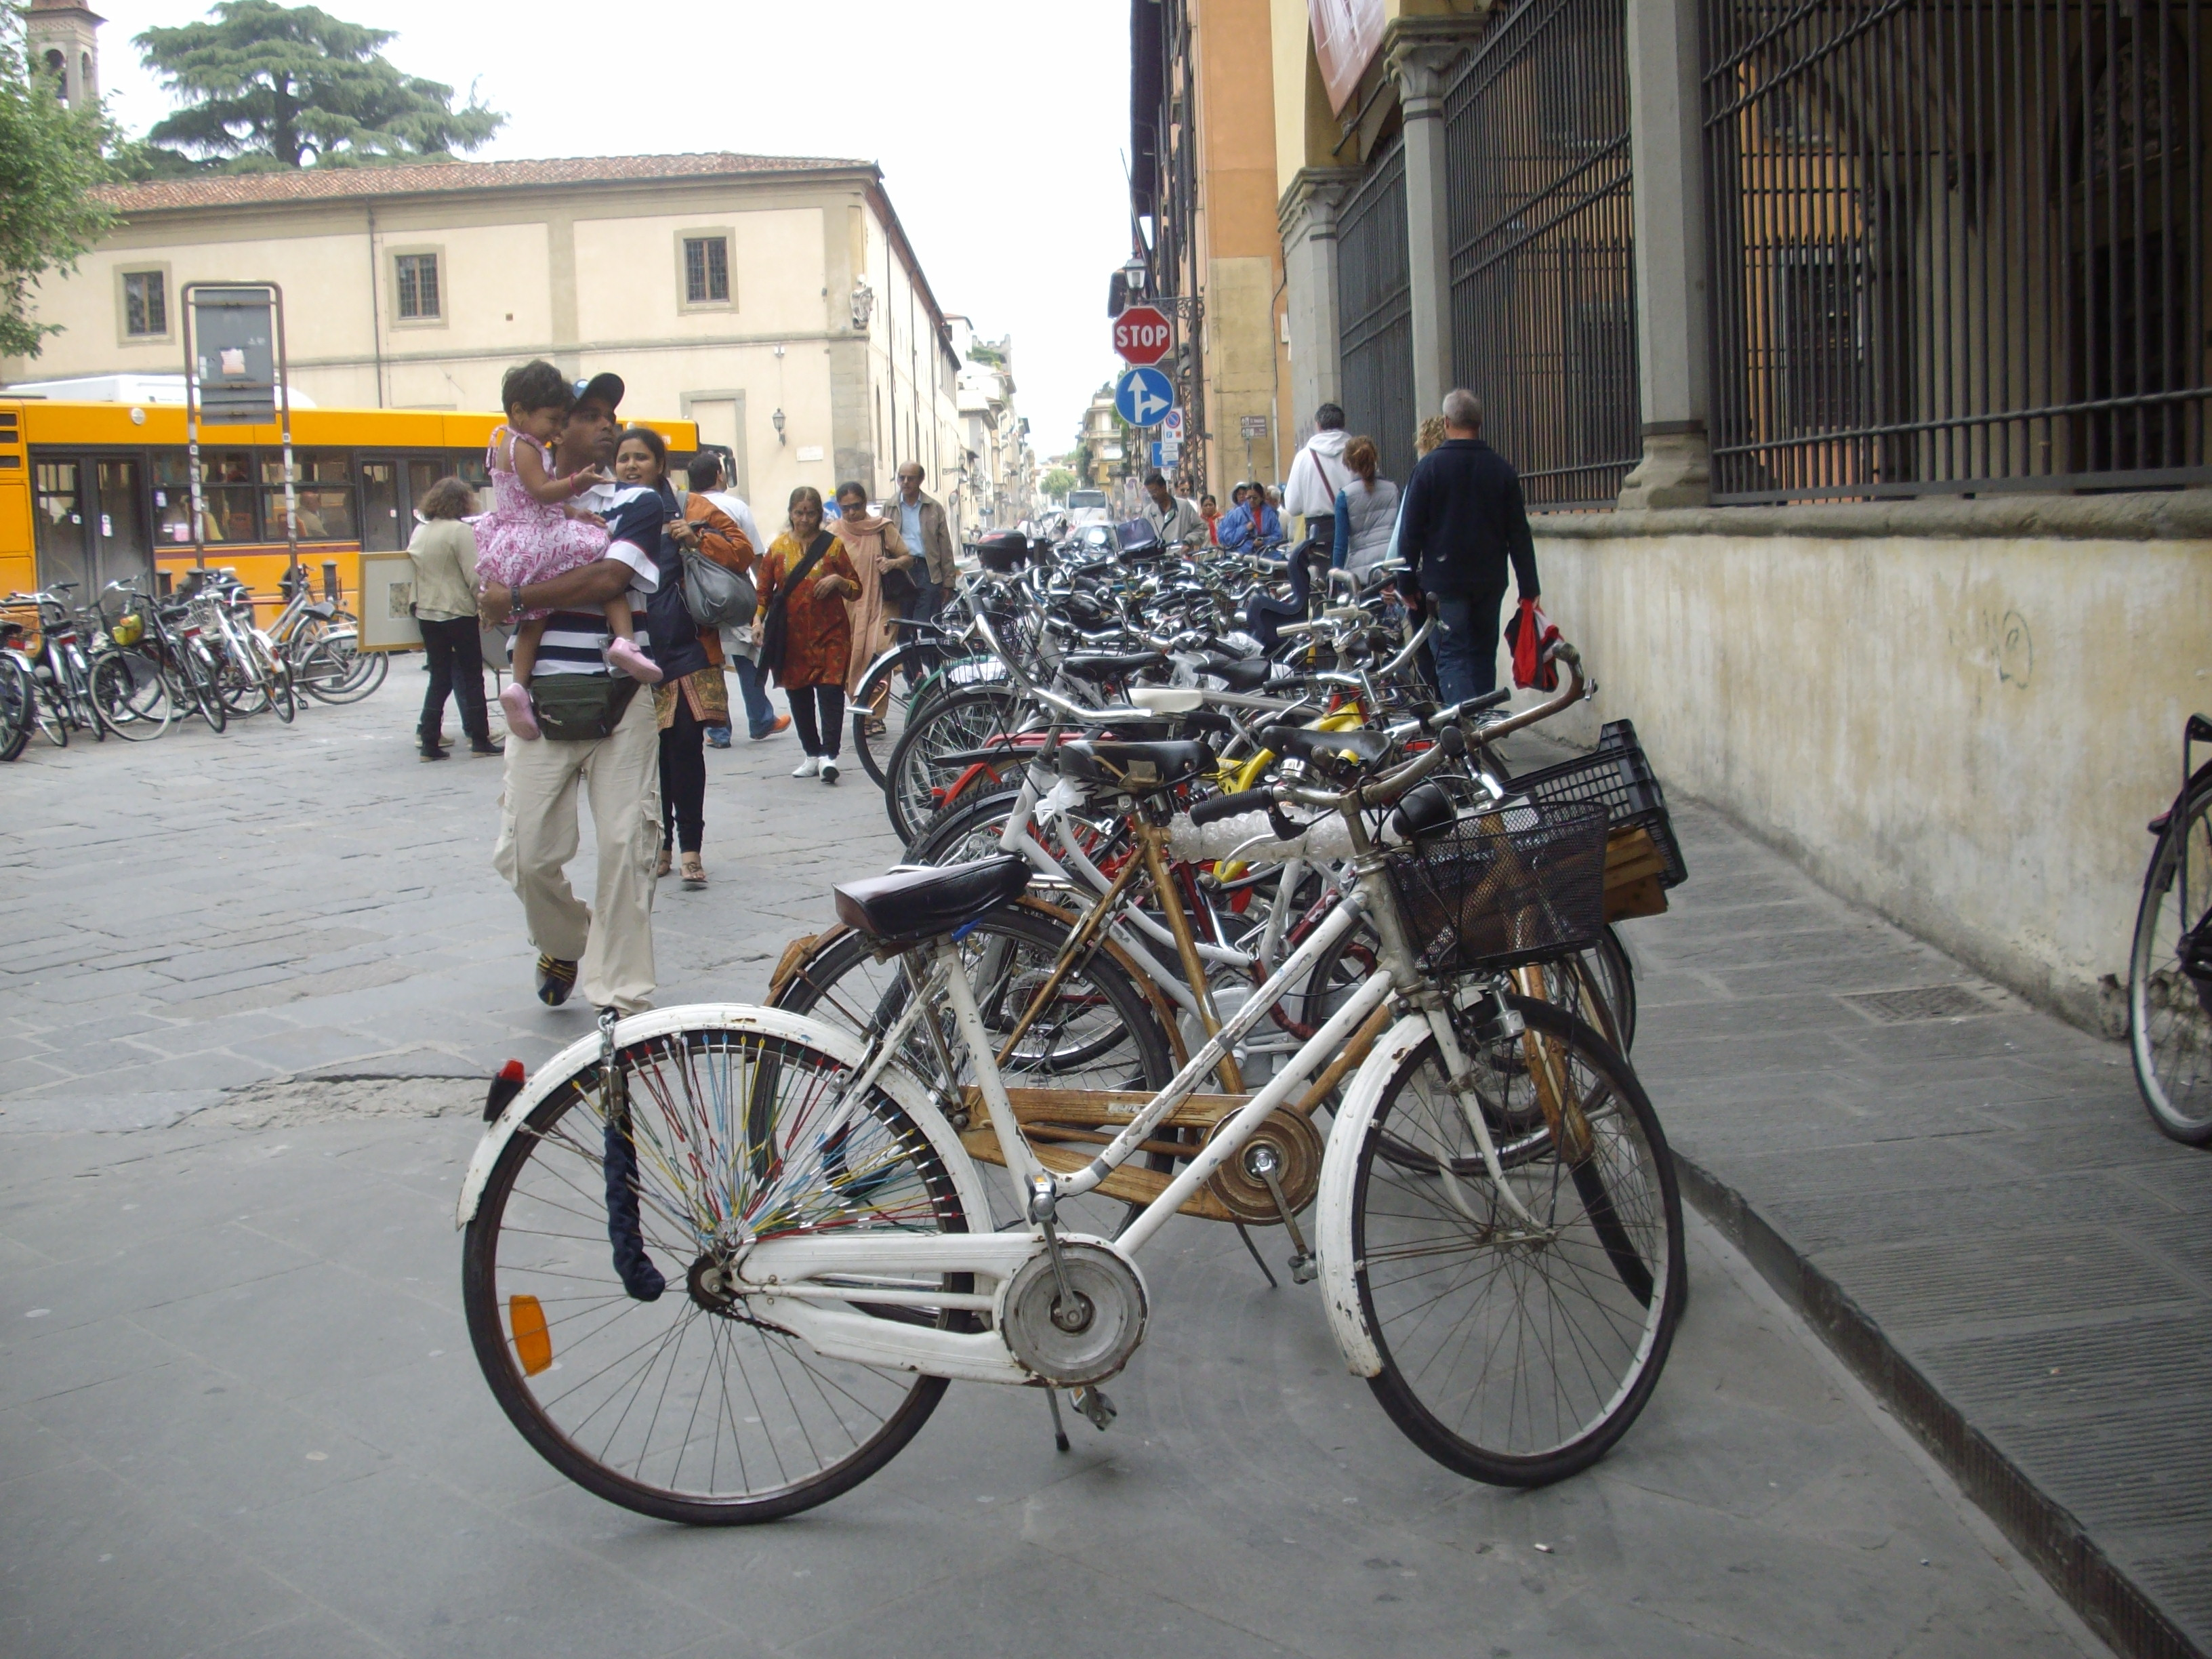 File:'Cycle Stand' at Florence(Italy).jpg - Wikimedia Commons